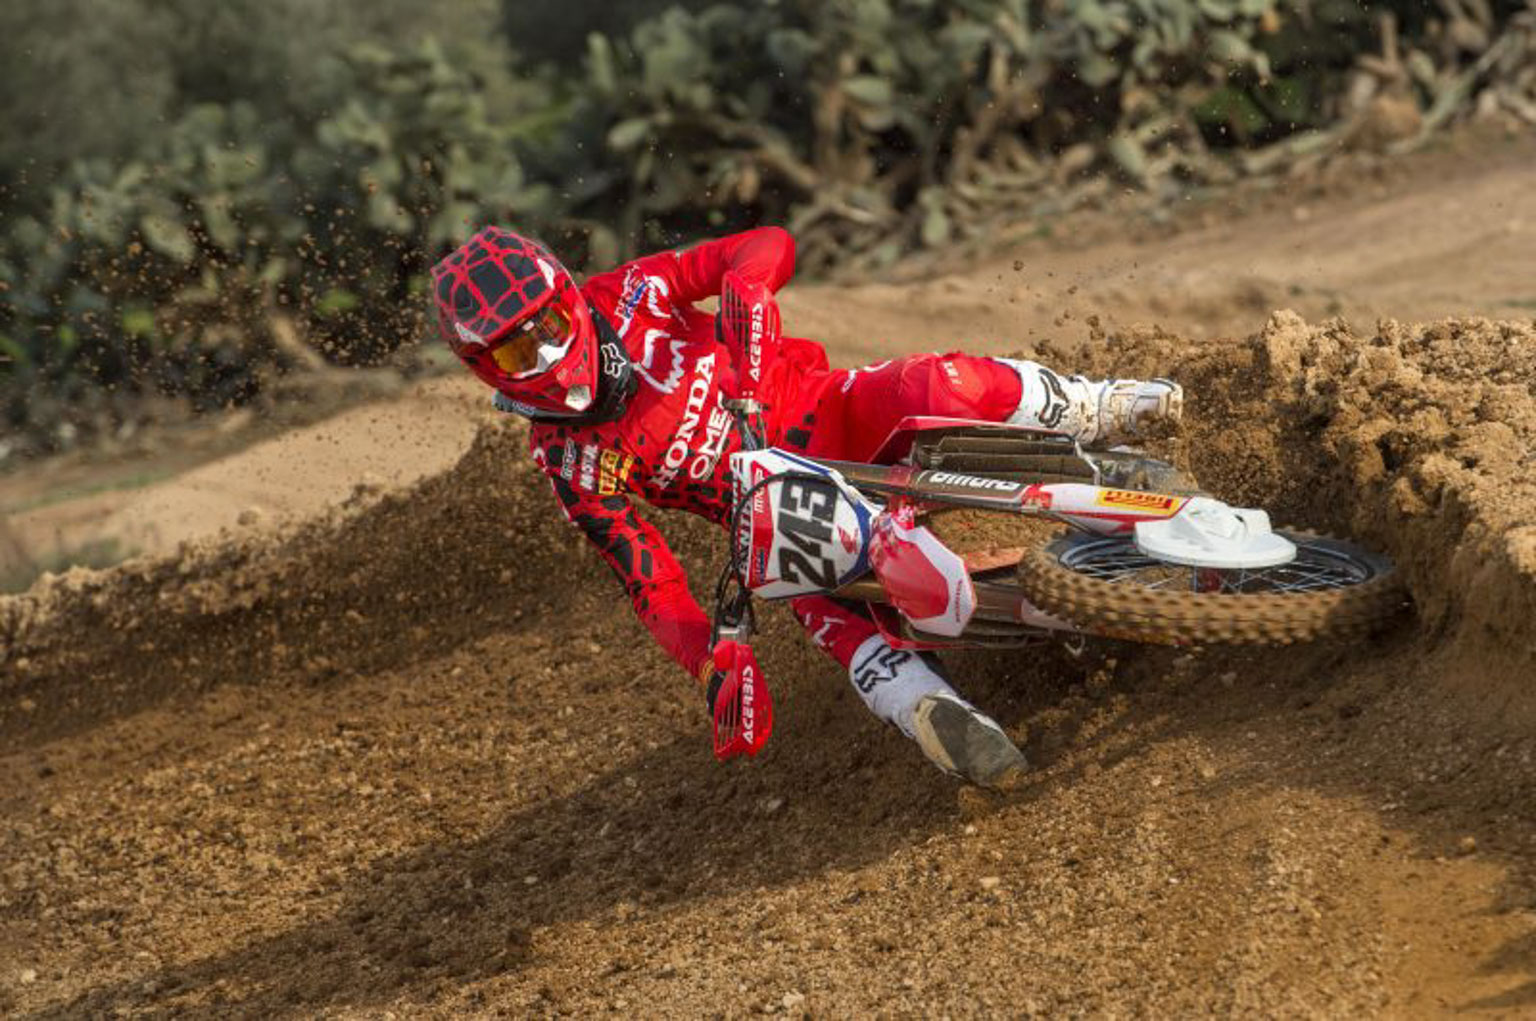 Can Tim Gajser retain his crown?